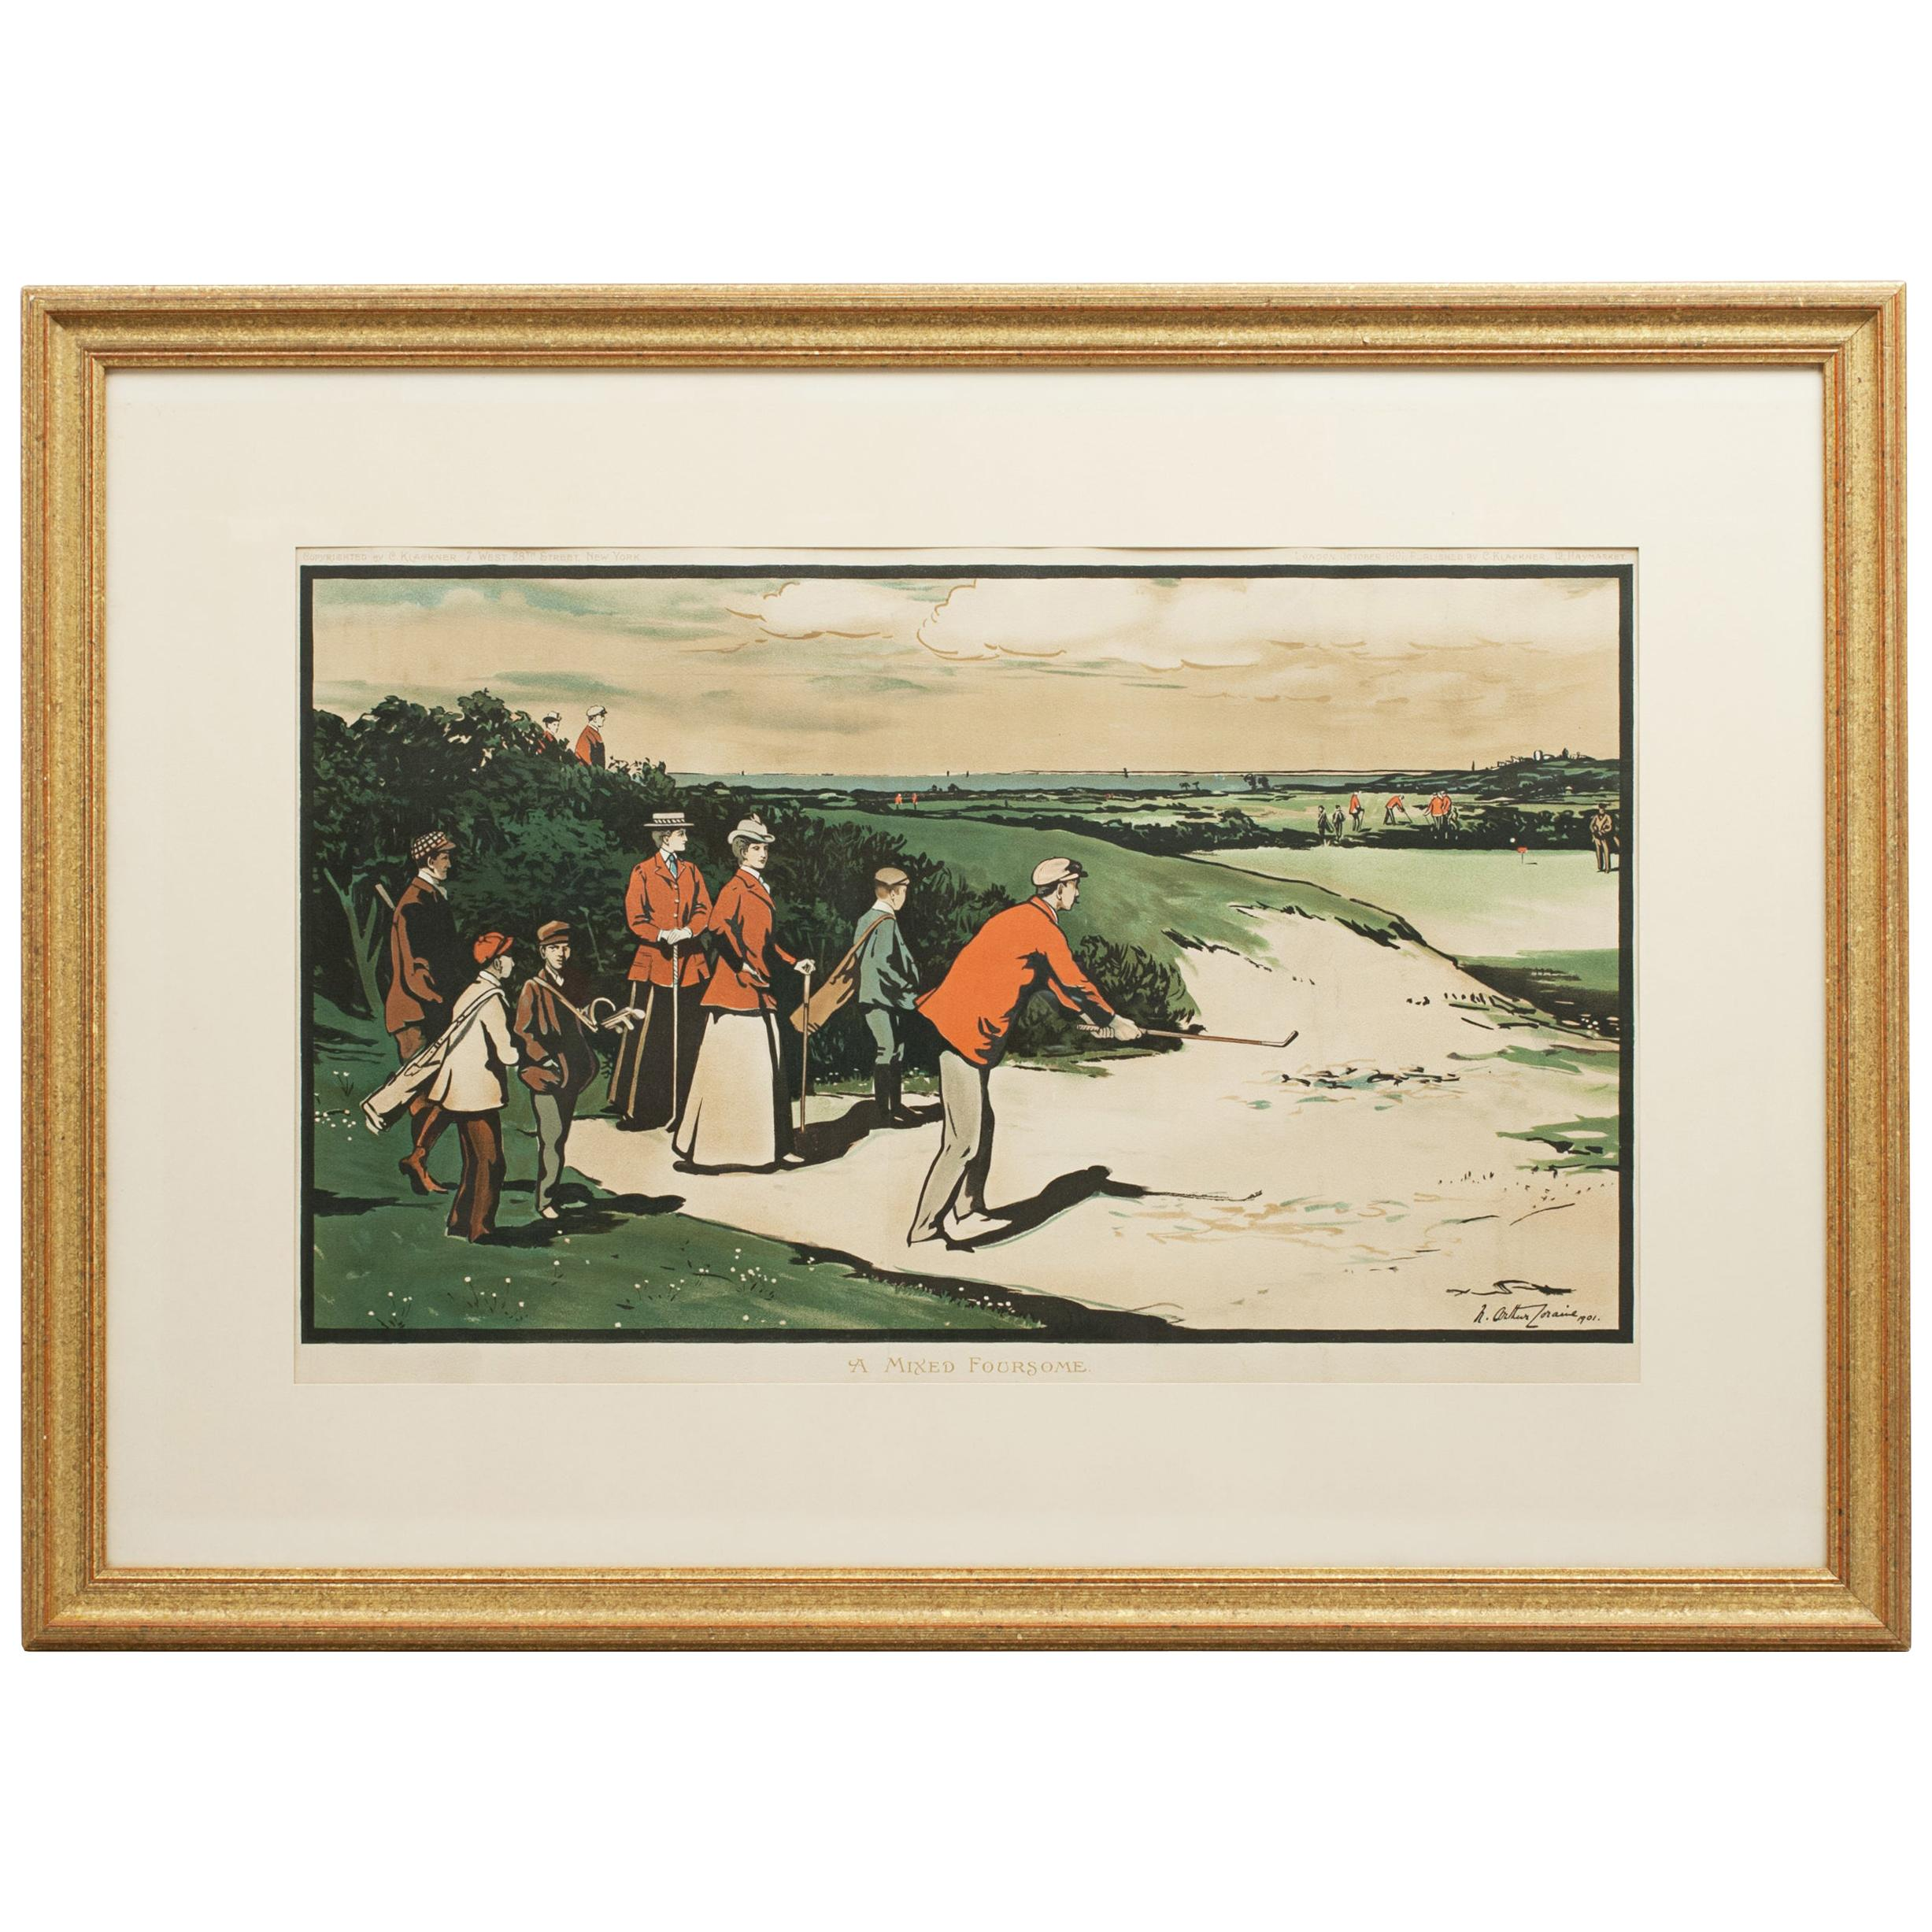 Antique Golf Print, Mixed Foursome after Arthur Loraine